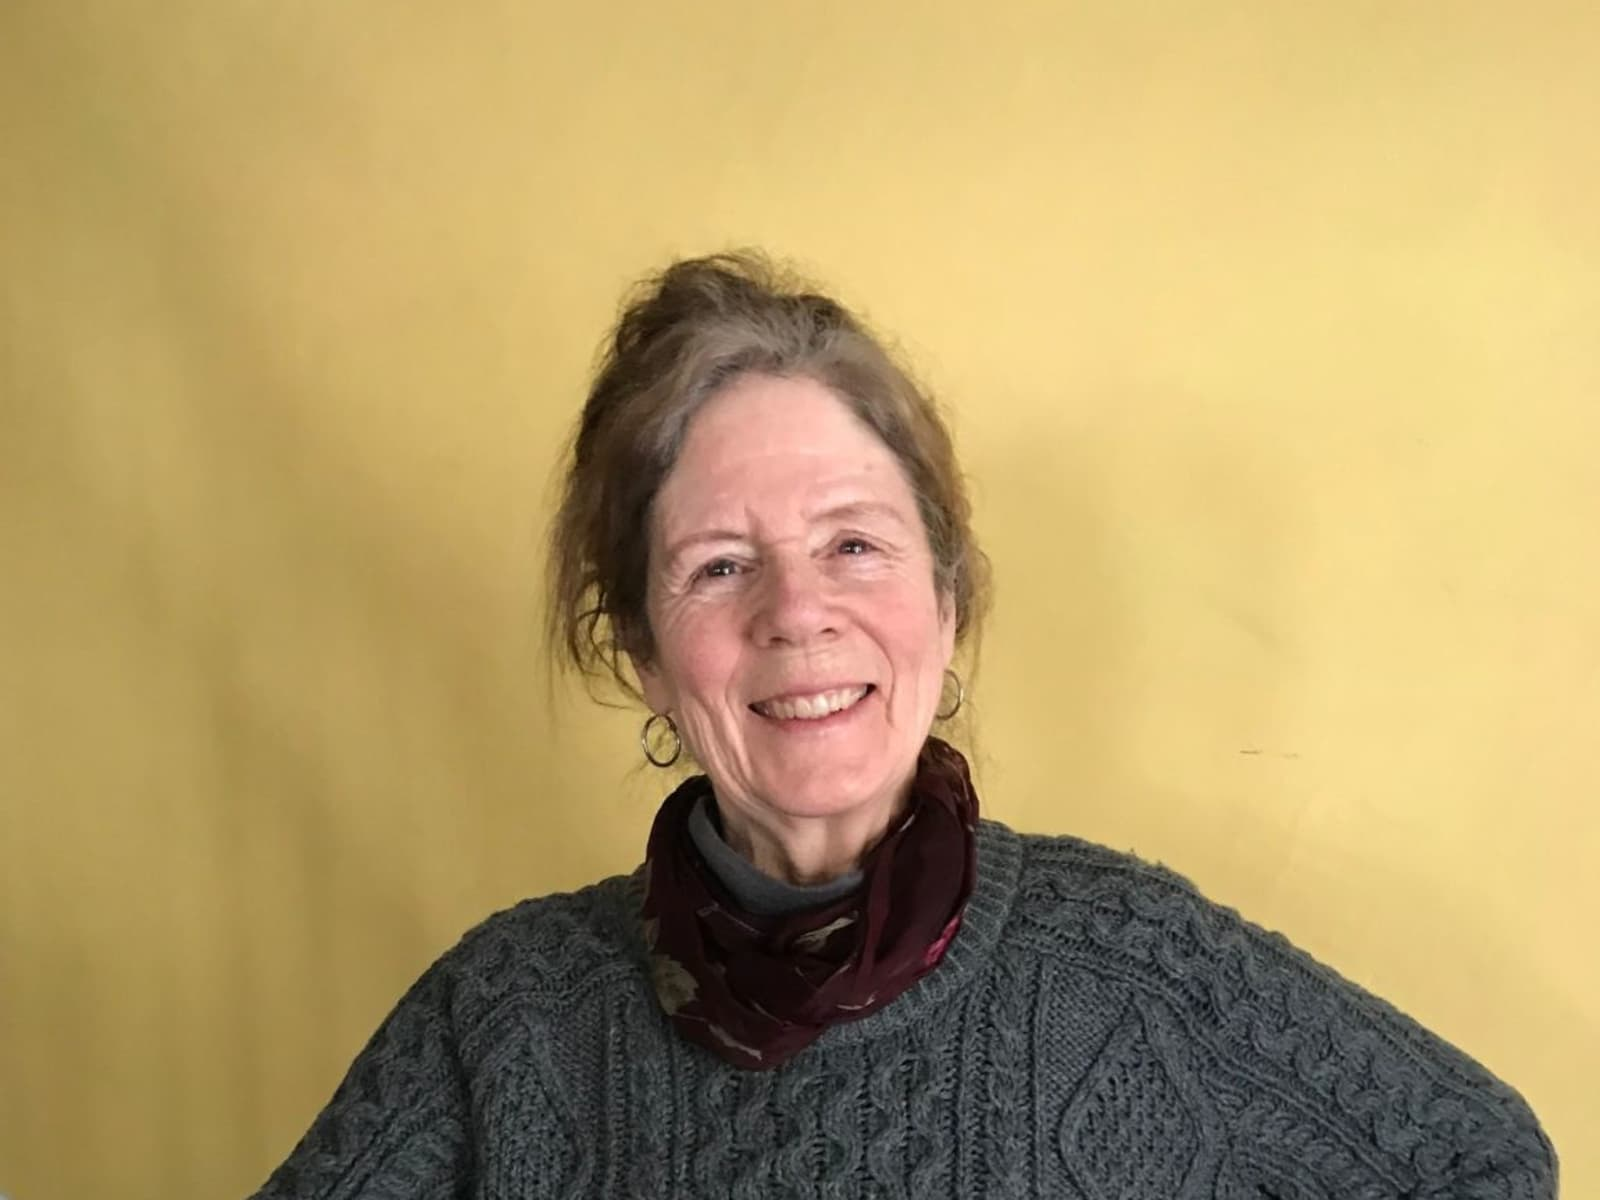 Joanne from Rockland, Maine, United States